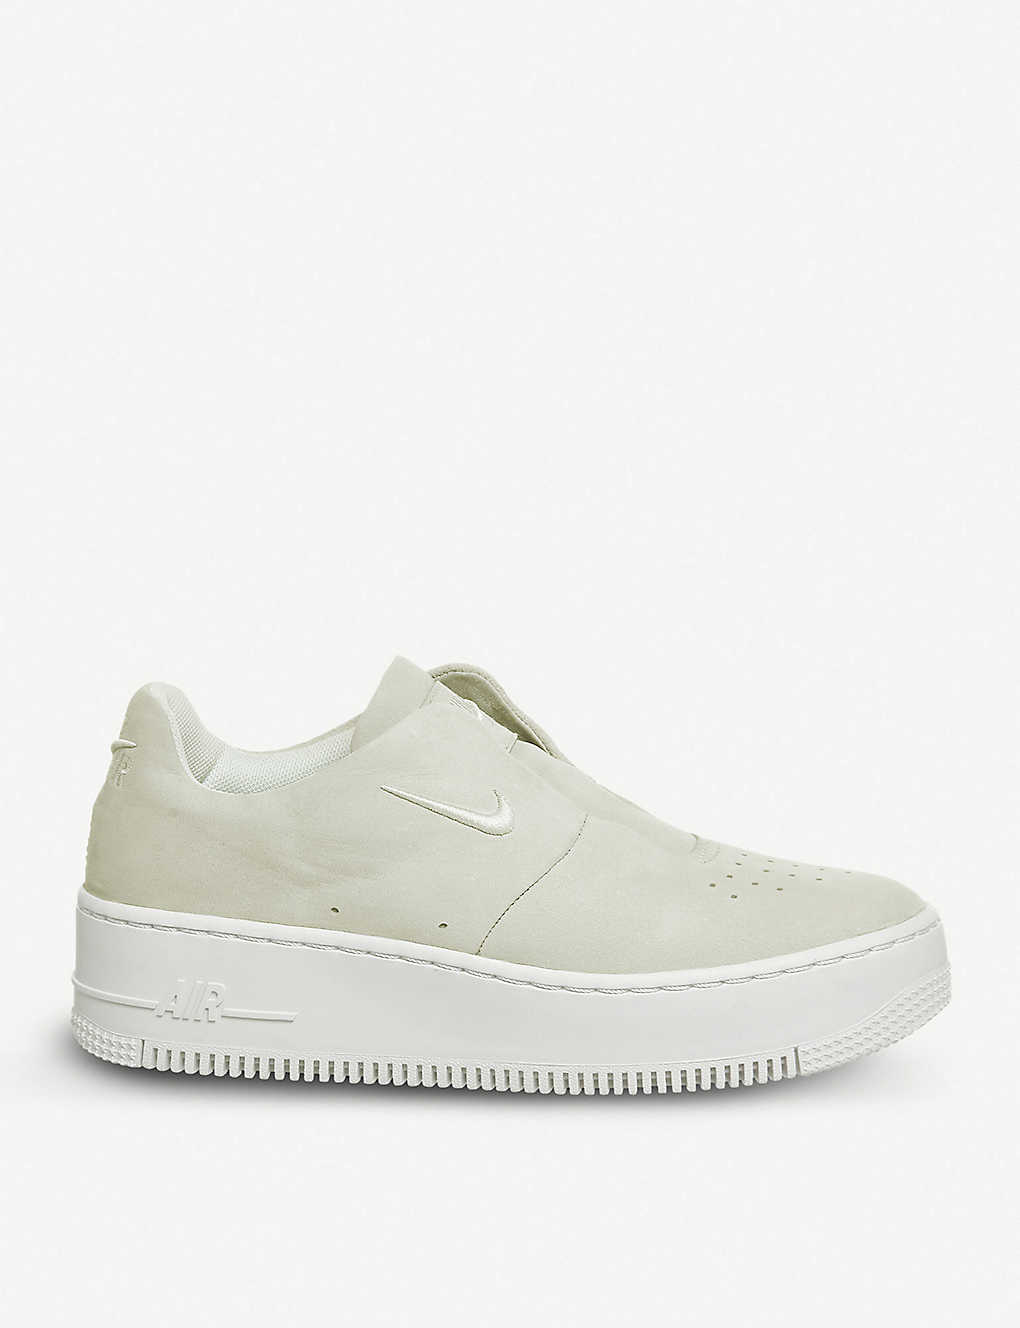 new arrivals 2a897 fb46c NIKE - Air Force 1 Sage XX suede trainers | Selfridges.com